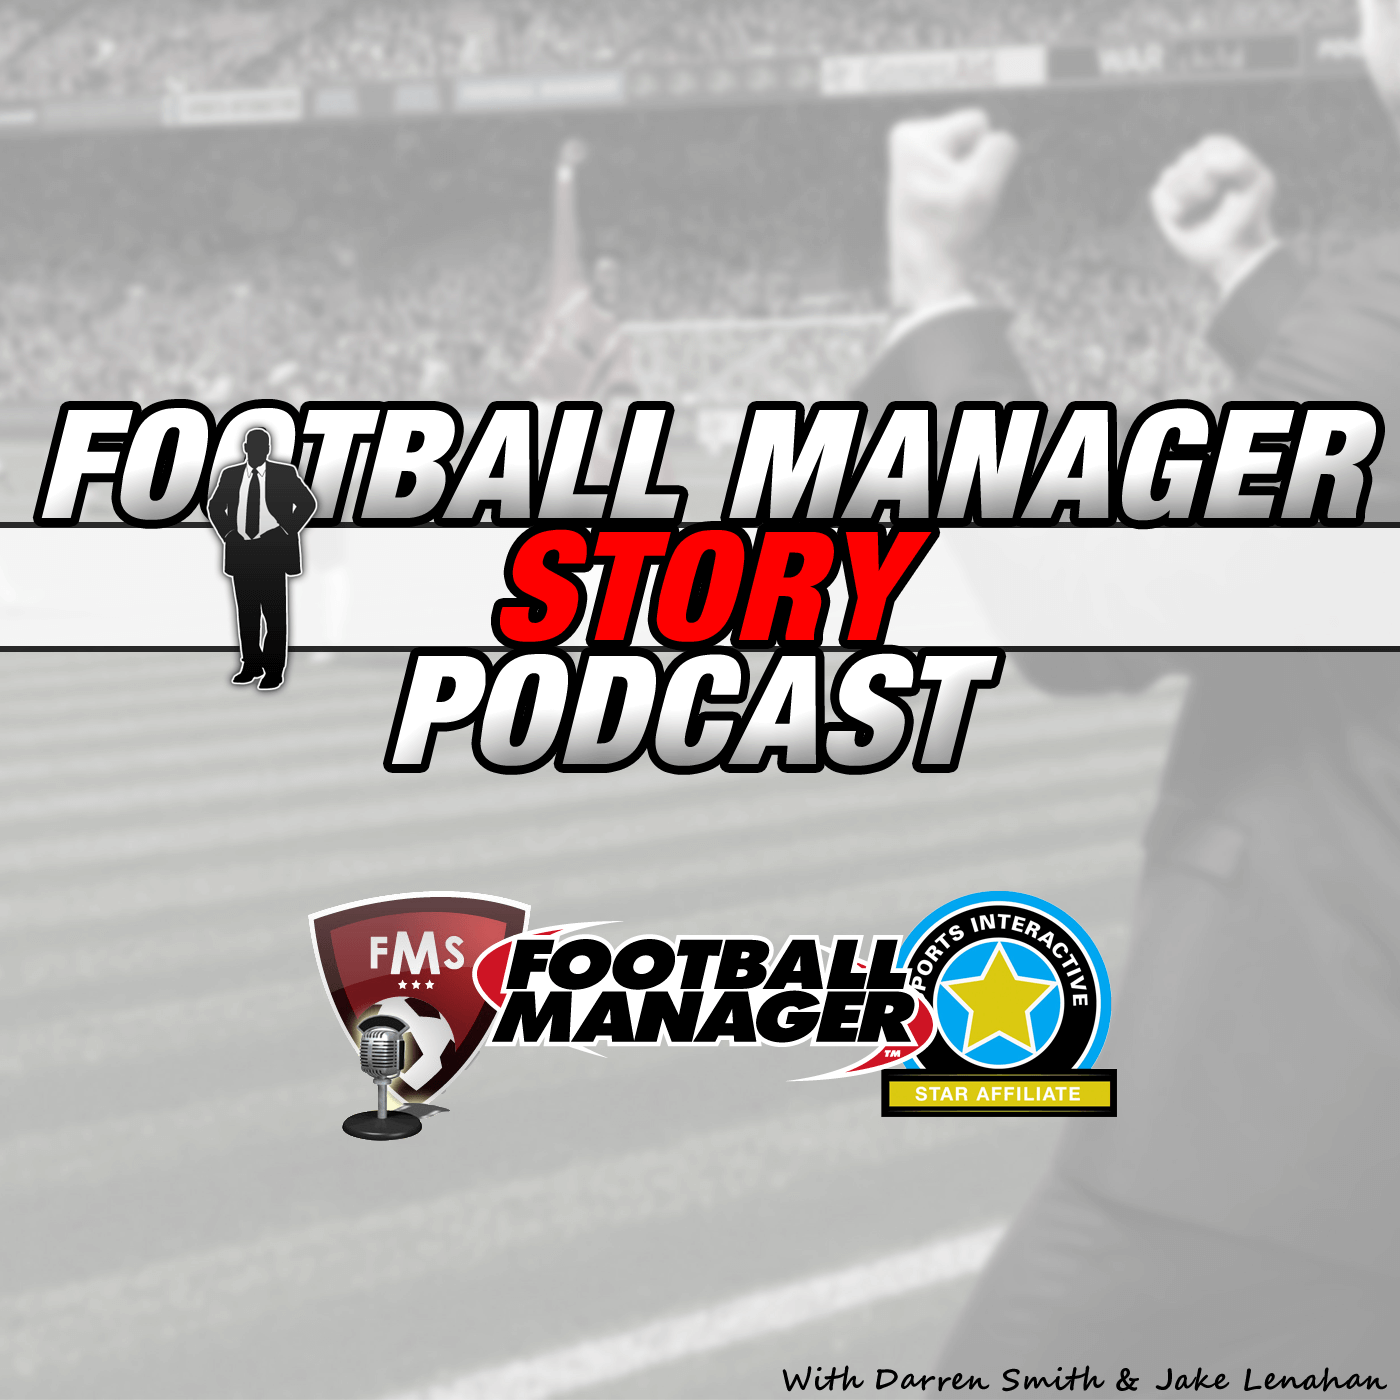 Football Manager Stories Podcast